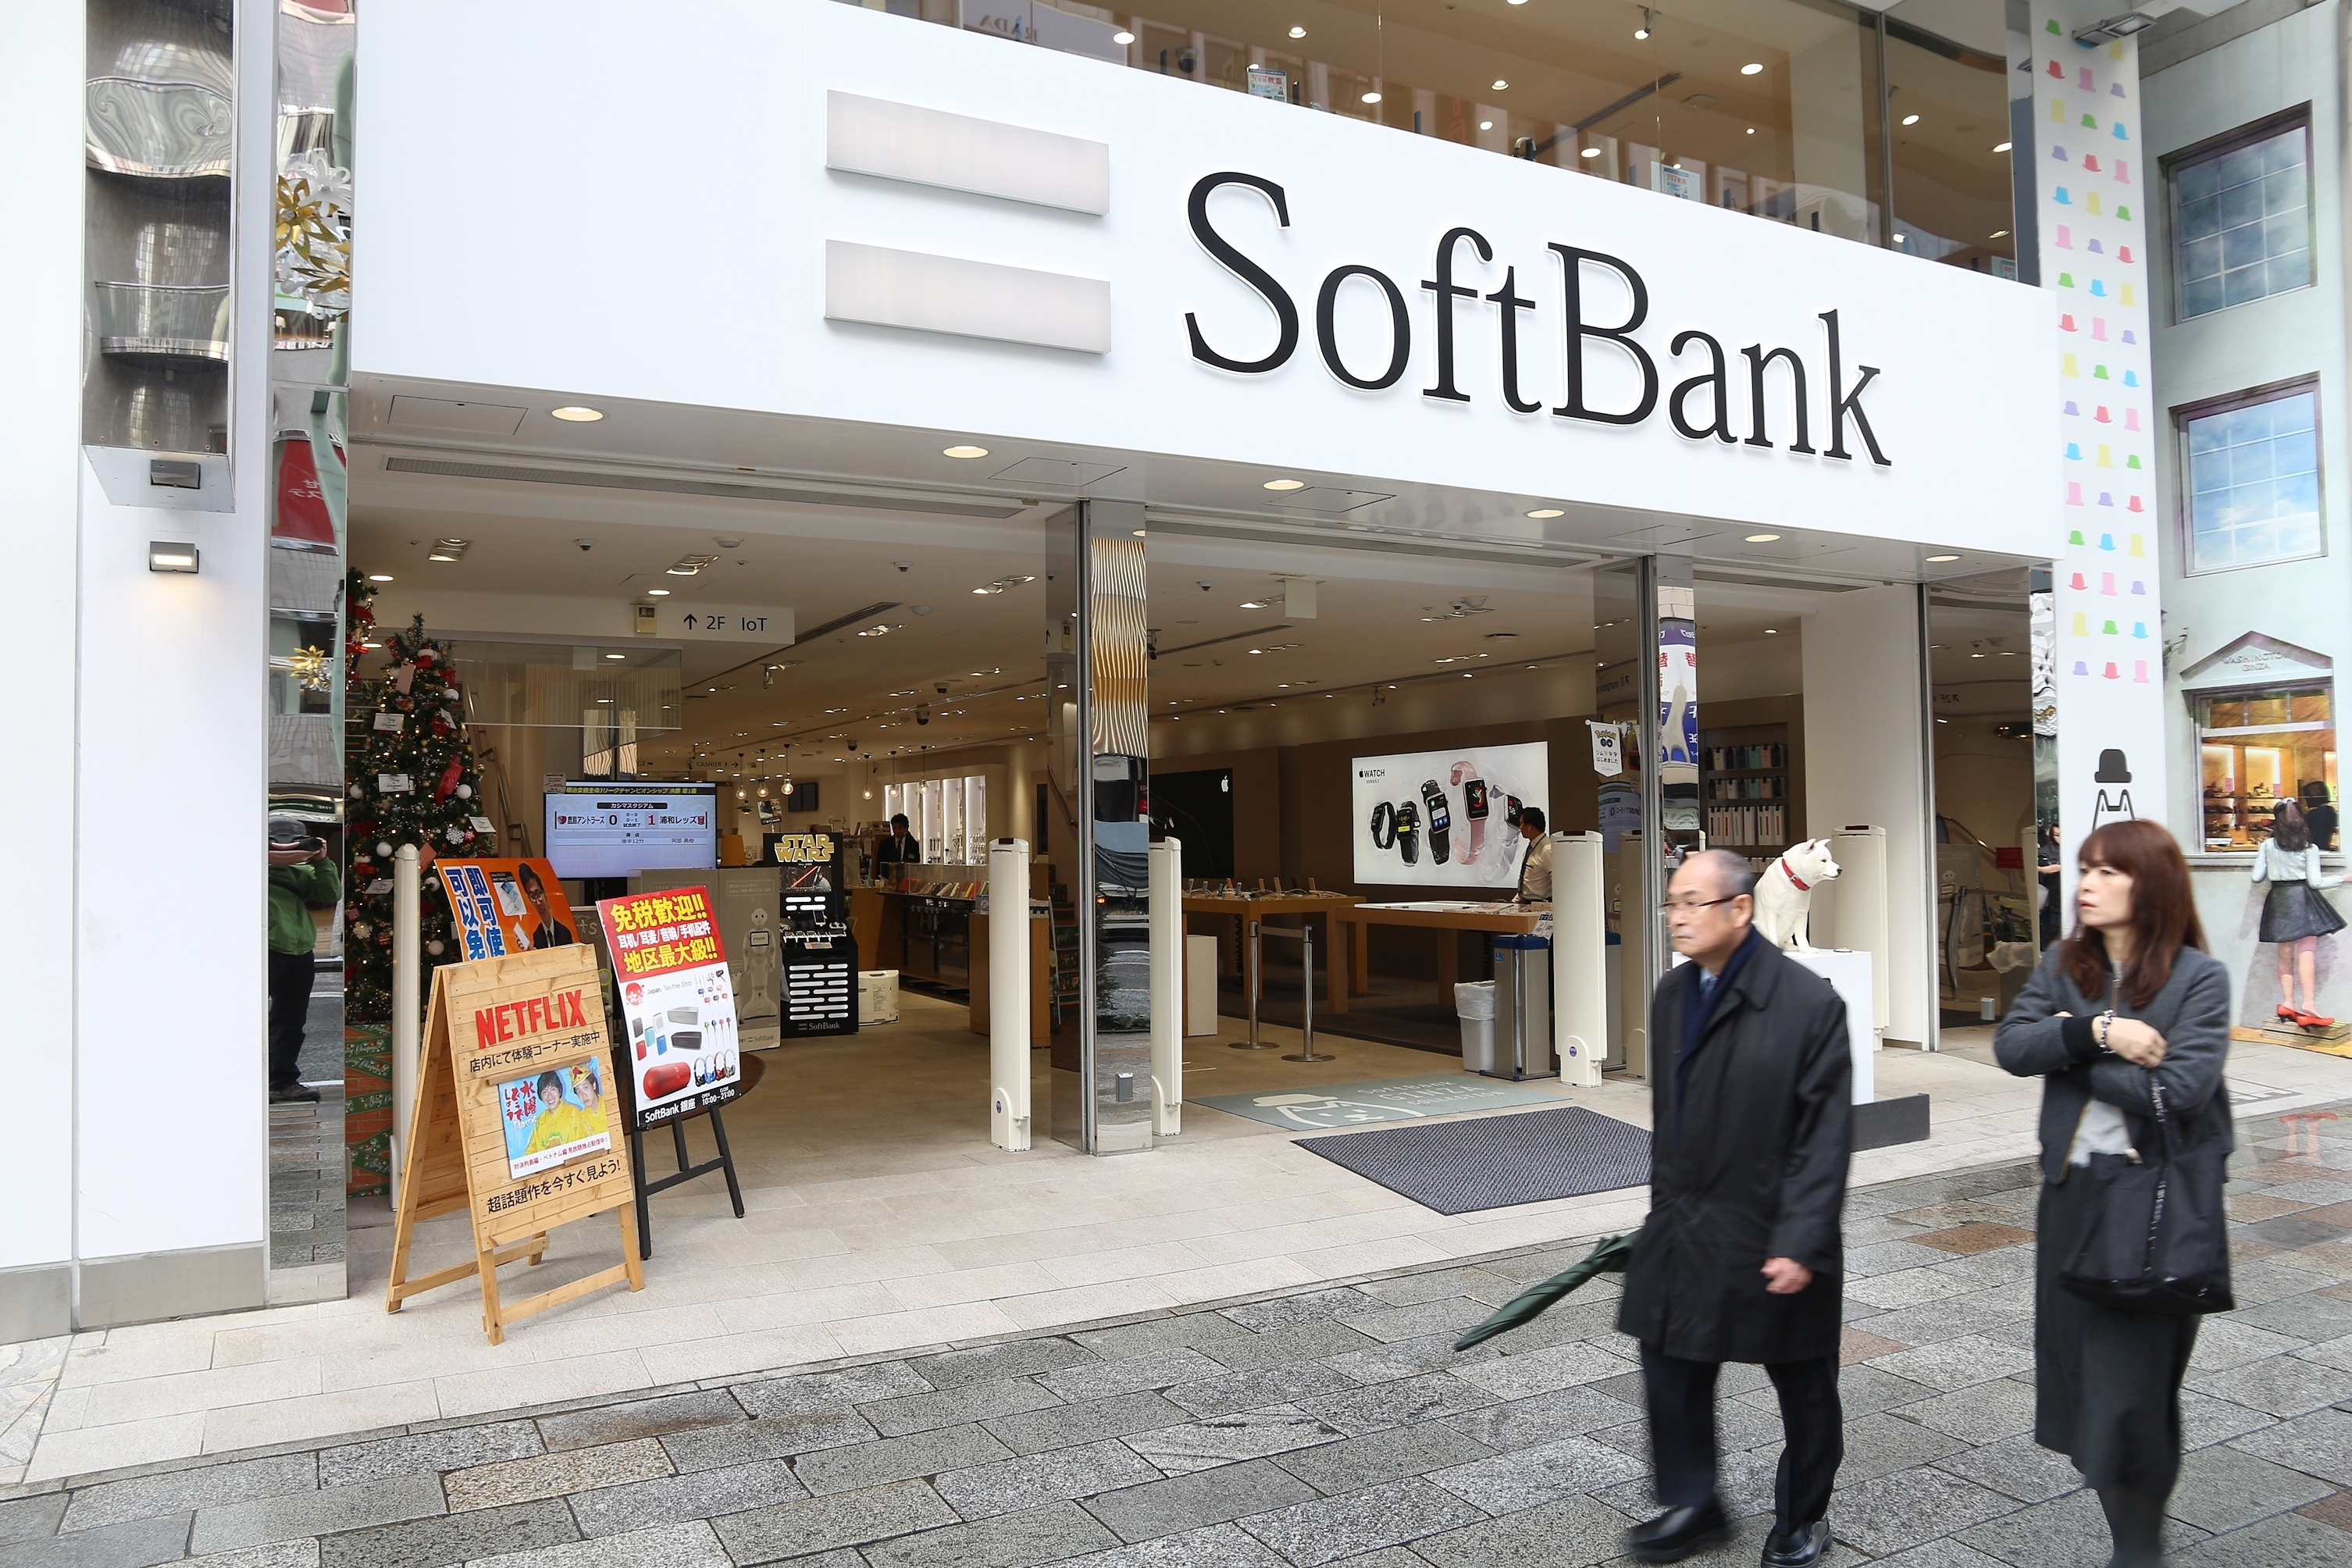 Softbank Completes PoC for Blockchain Cross-Carrier Payments